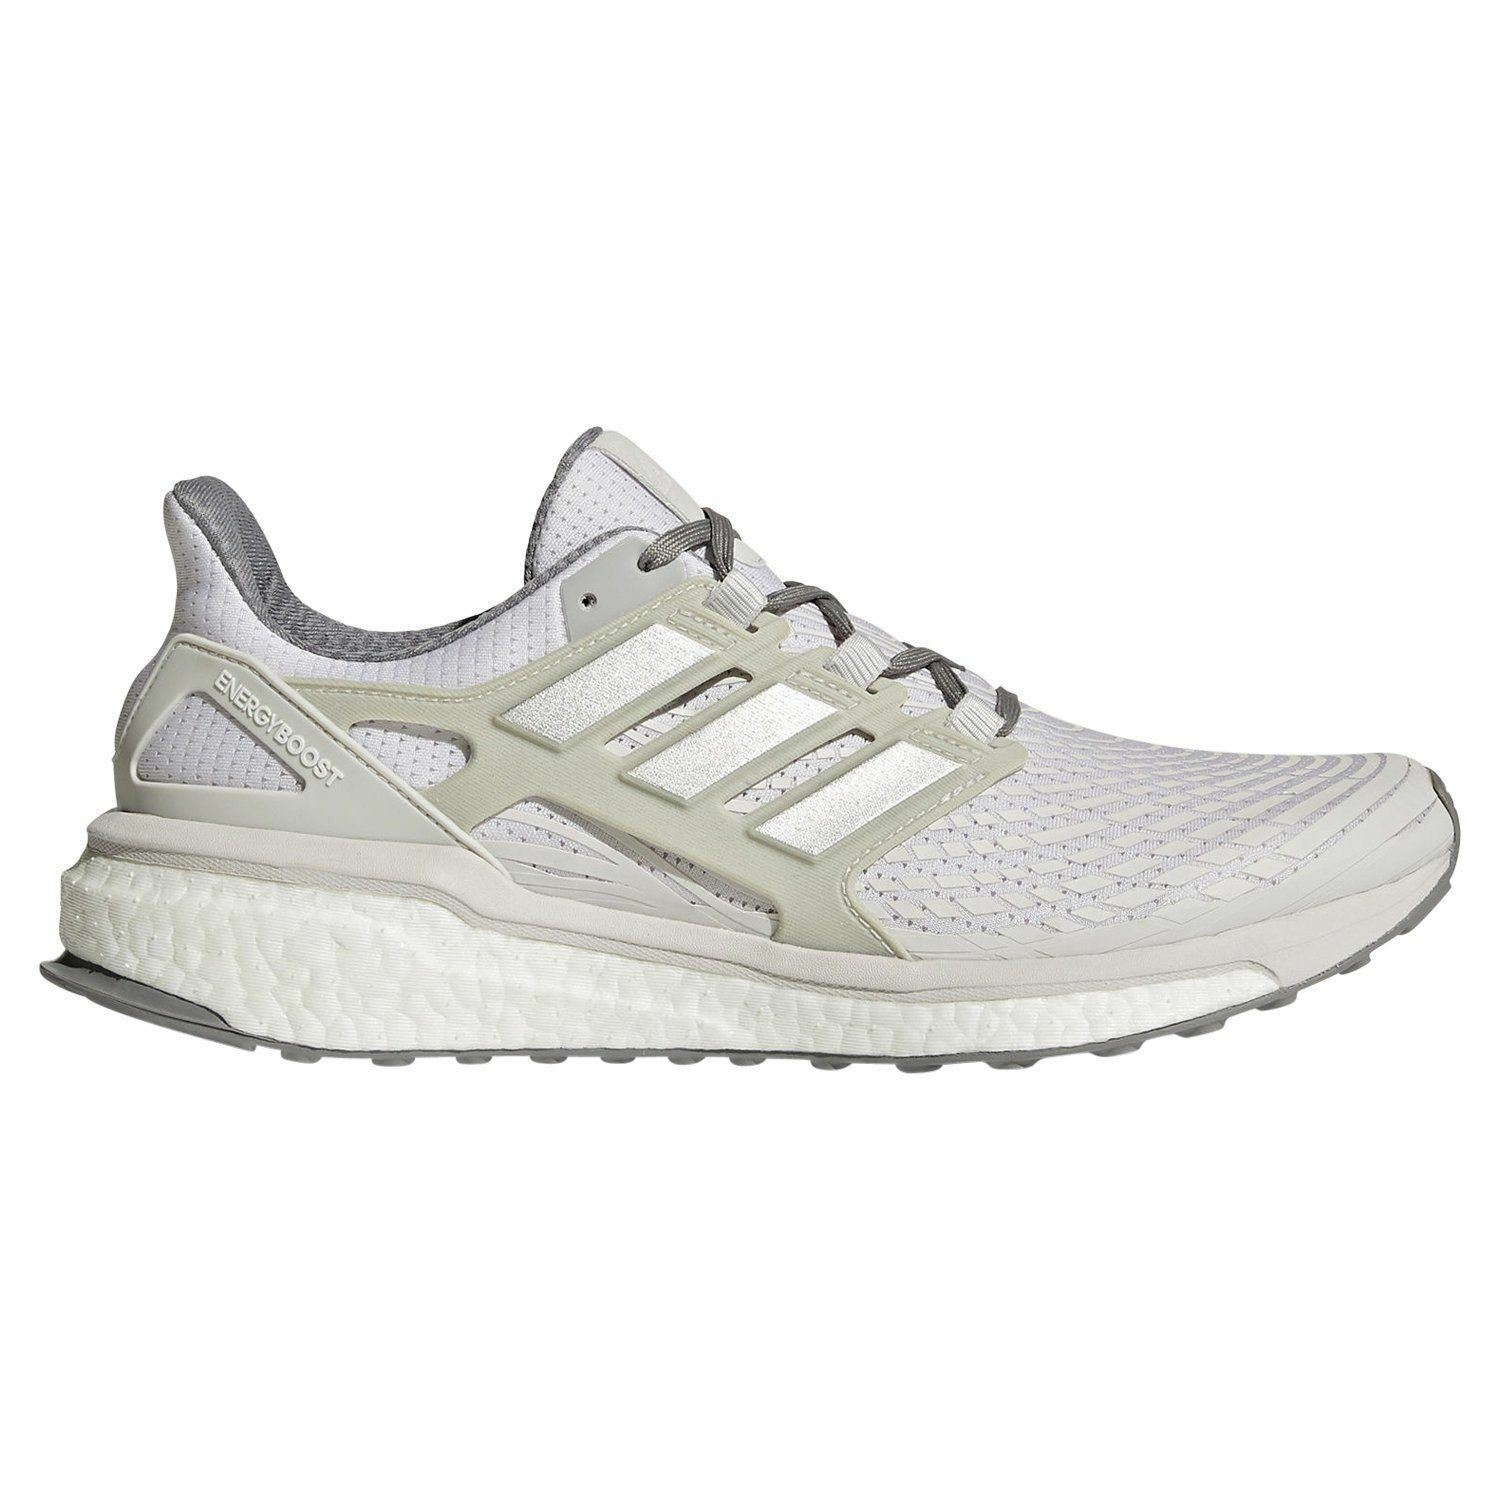 Adidas MEN'S ENERGY BOOST RUNNING TRAINERS WHITE running COMFY SNEAKERS SHOE NEW